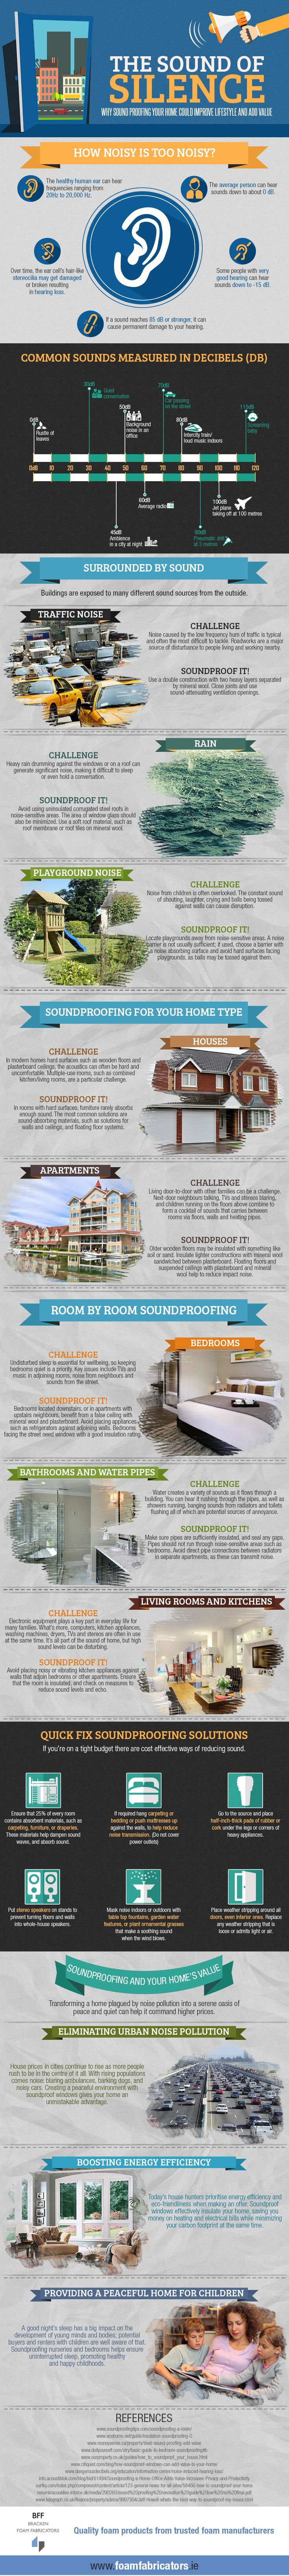 The Sound of #Silence: Sound Proofing Your #Home - Do you fancy an infographic?  There are a lot of them online, but if you want your own please visit http://www.linfografico.com/prezzi/  Online girano molte infografiche, se ne vuoi realizzare una tutta tua visita http://www.linfografico.com/prezzi/